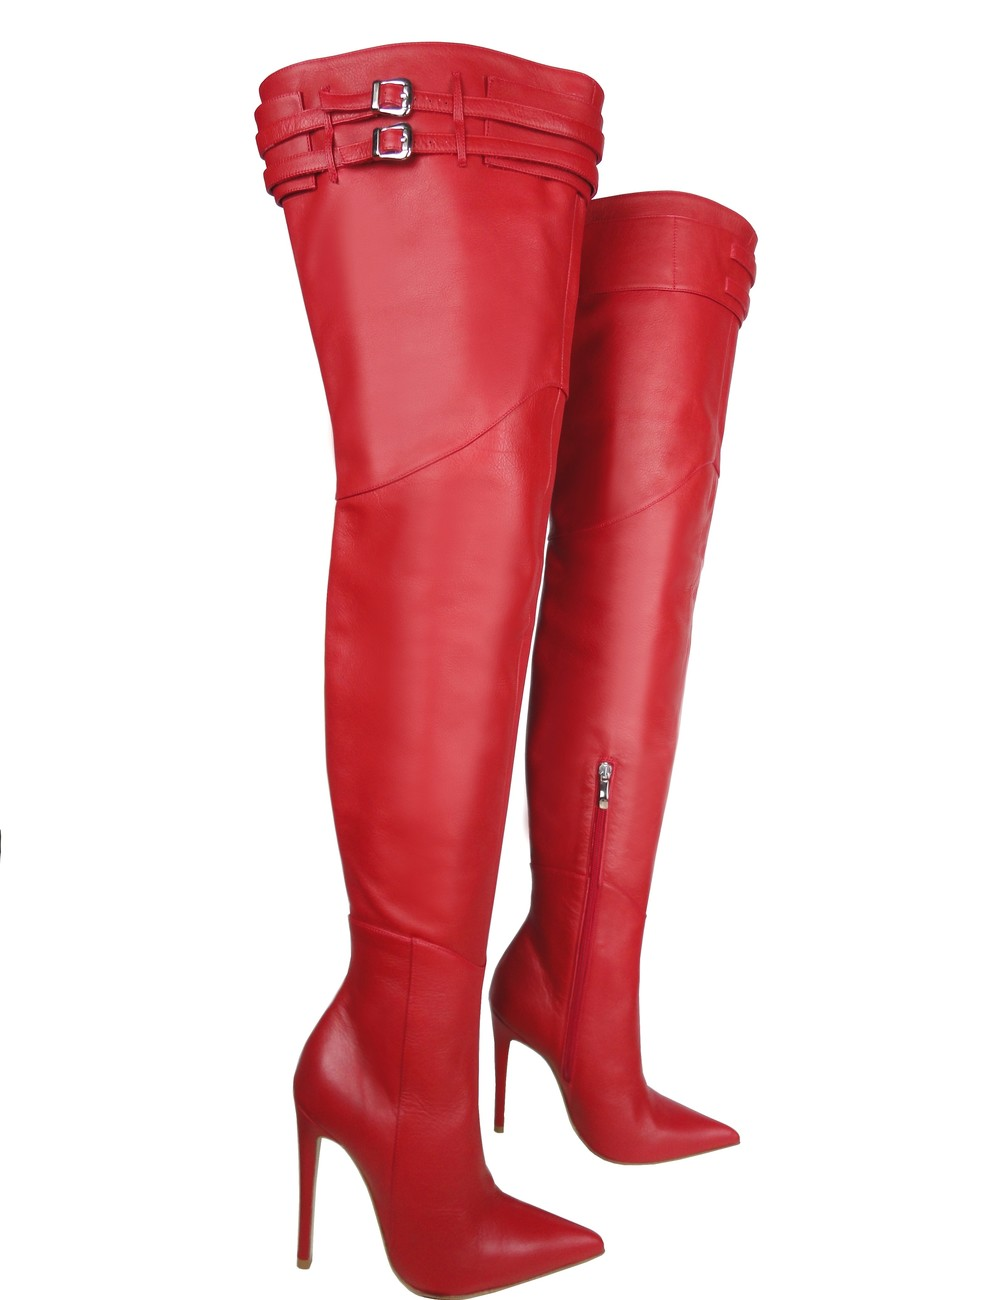 CQ for Sanctum Extra high Italian thigh boots with belts